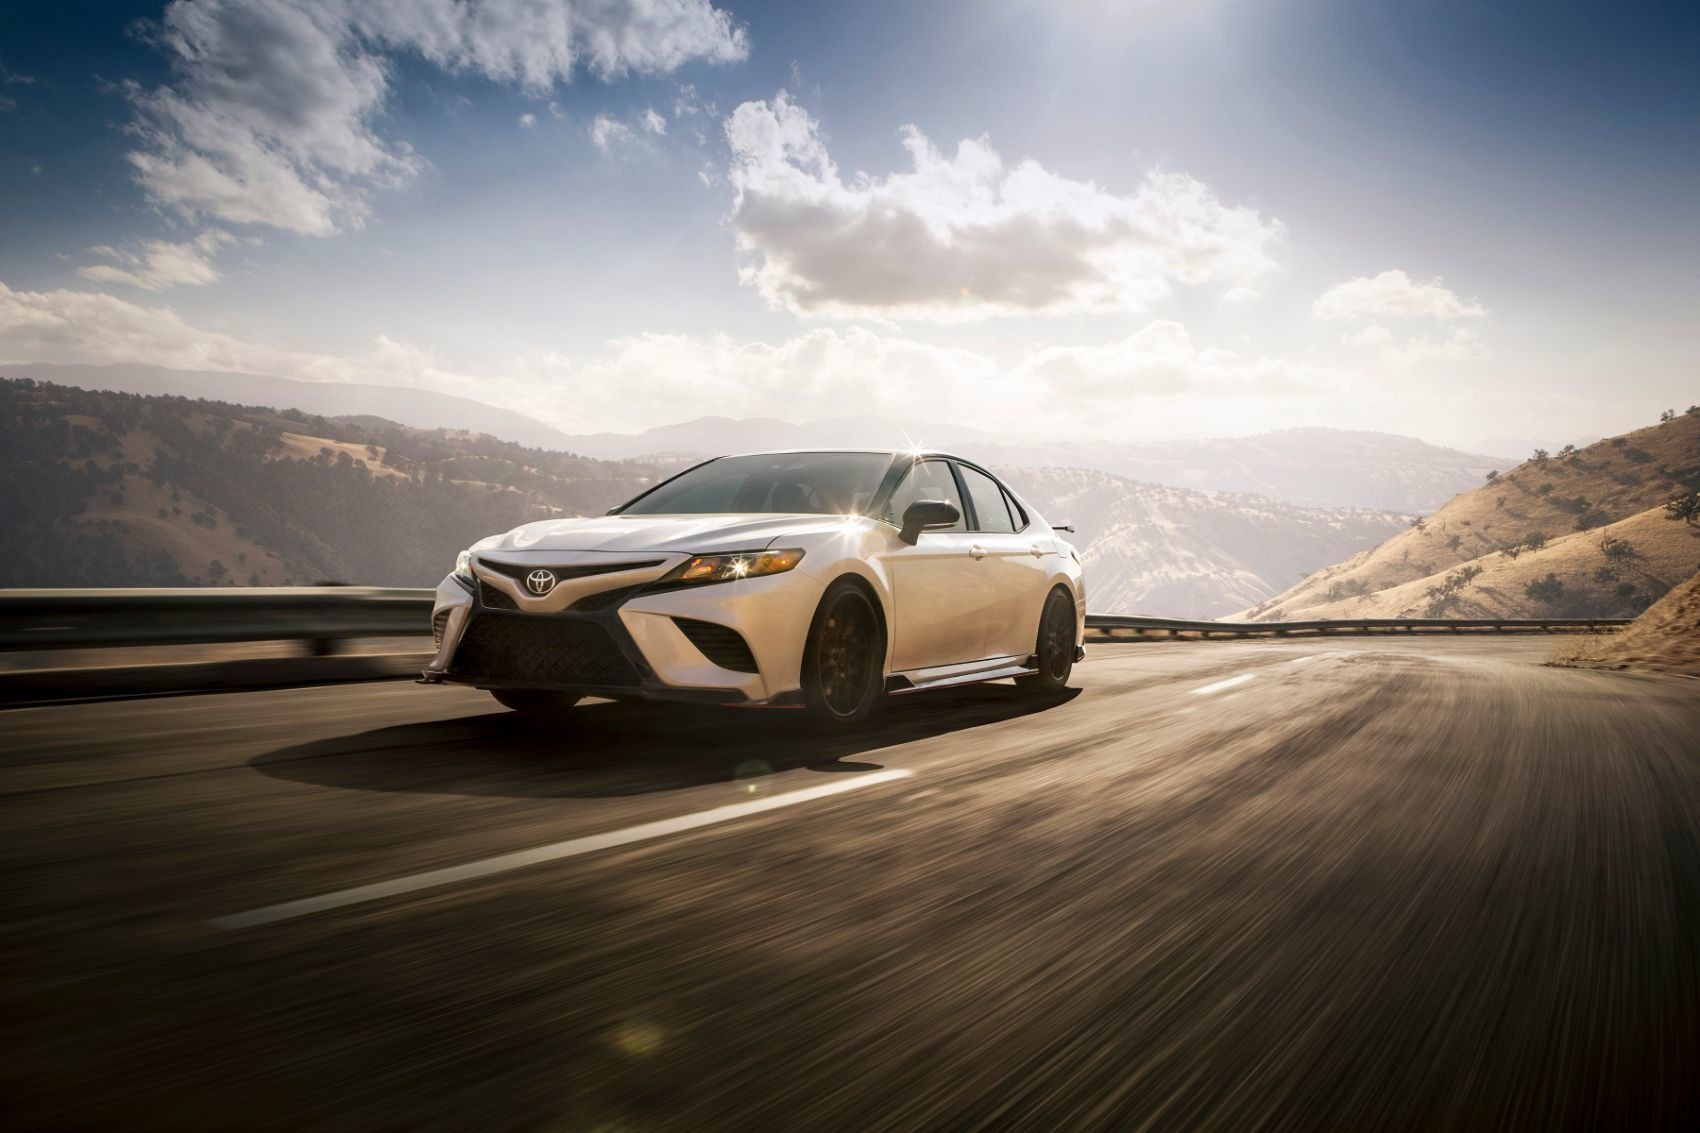 2020 Toyota Camry TRD Review: This Track-Tuned Sedan Will Spice Up Your Daily Commute